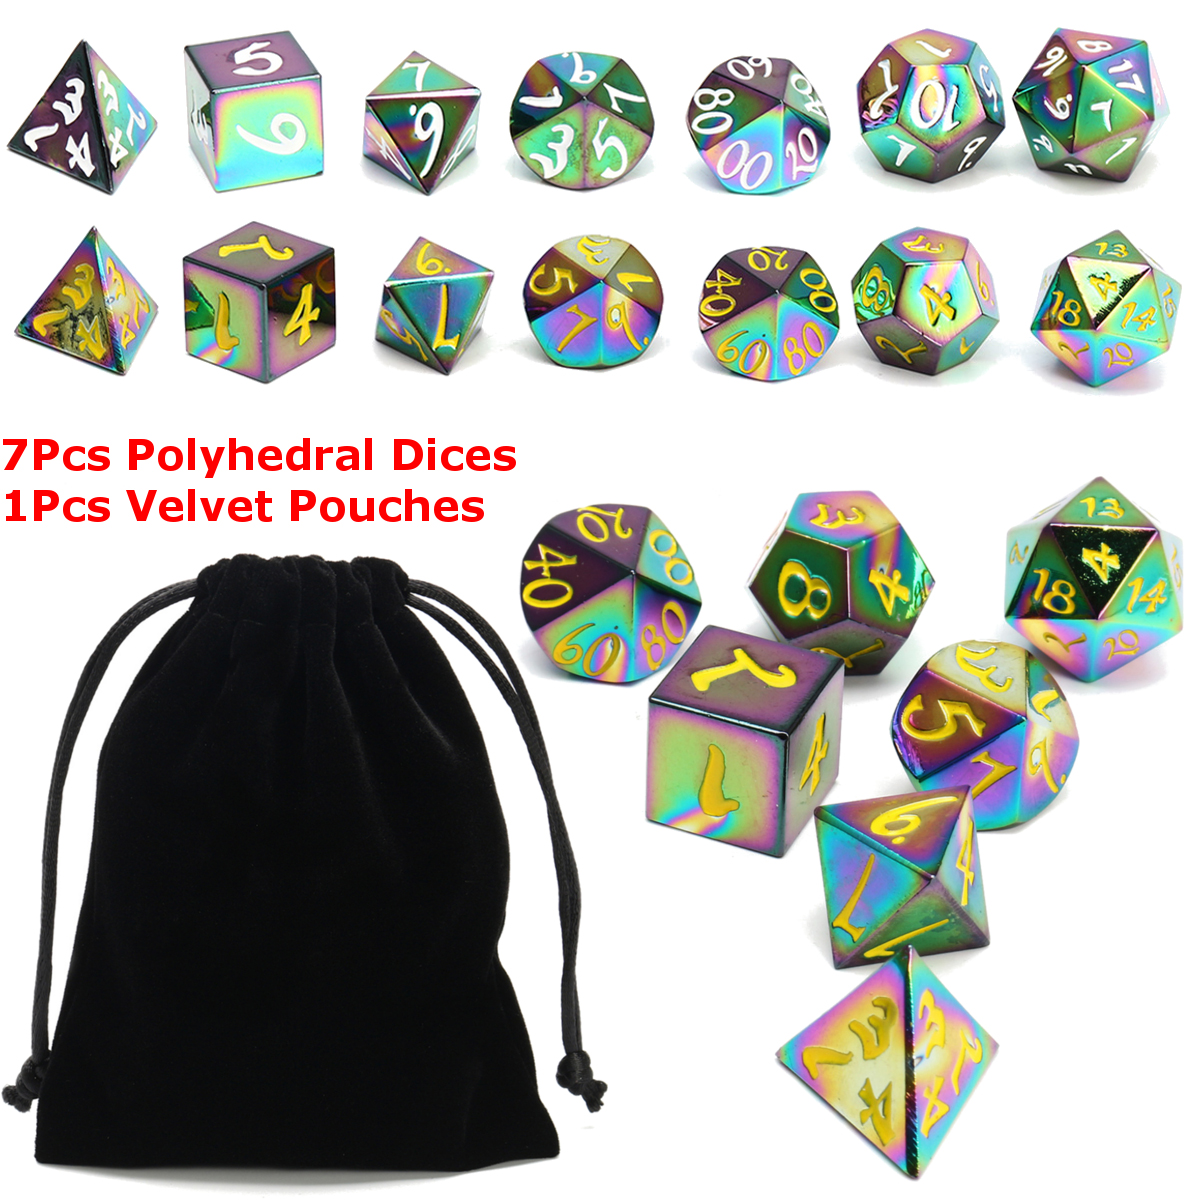 7Pcs Antique Metal Polyhedral Dices Set Role Playing Game Gadget With Bag